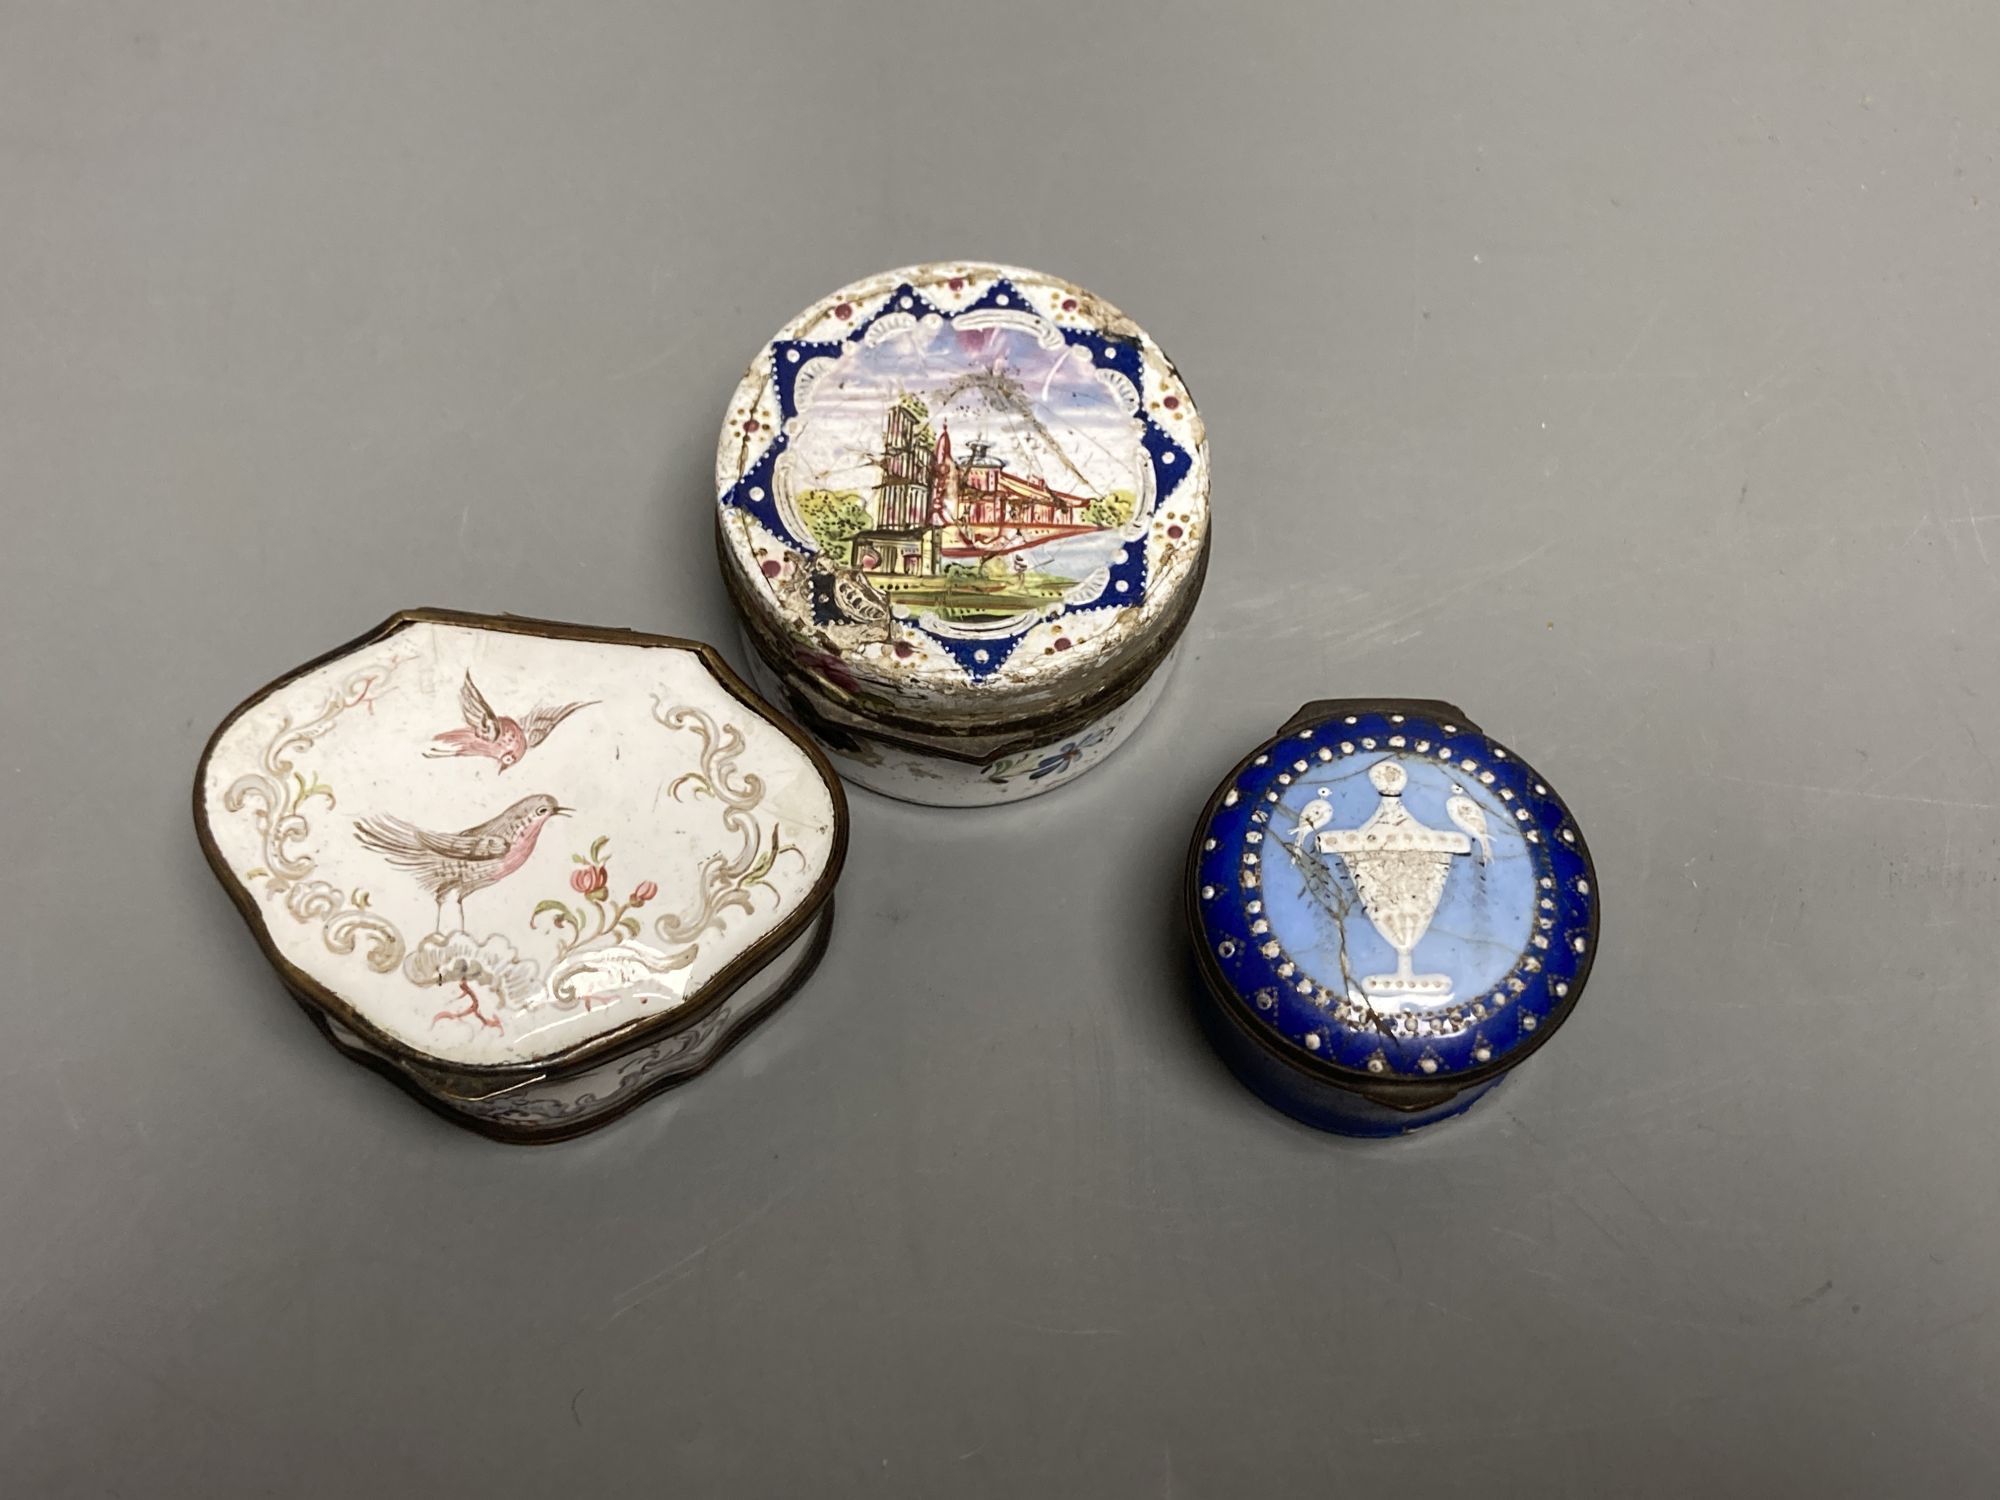 An 18th century white enamelled box painted with a palace, 5cm., a cartouche shaped box decorated - Image 2 of 3